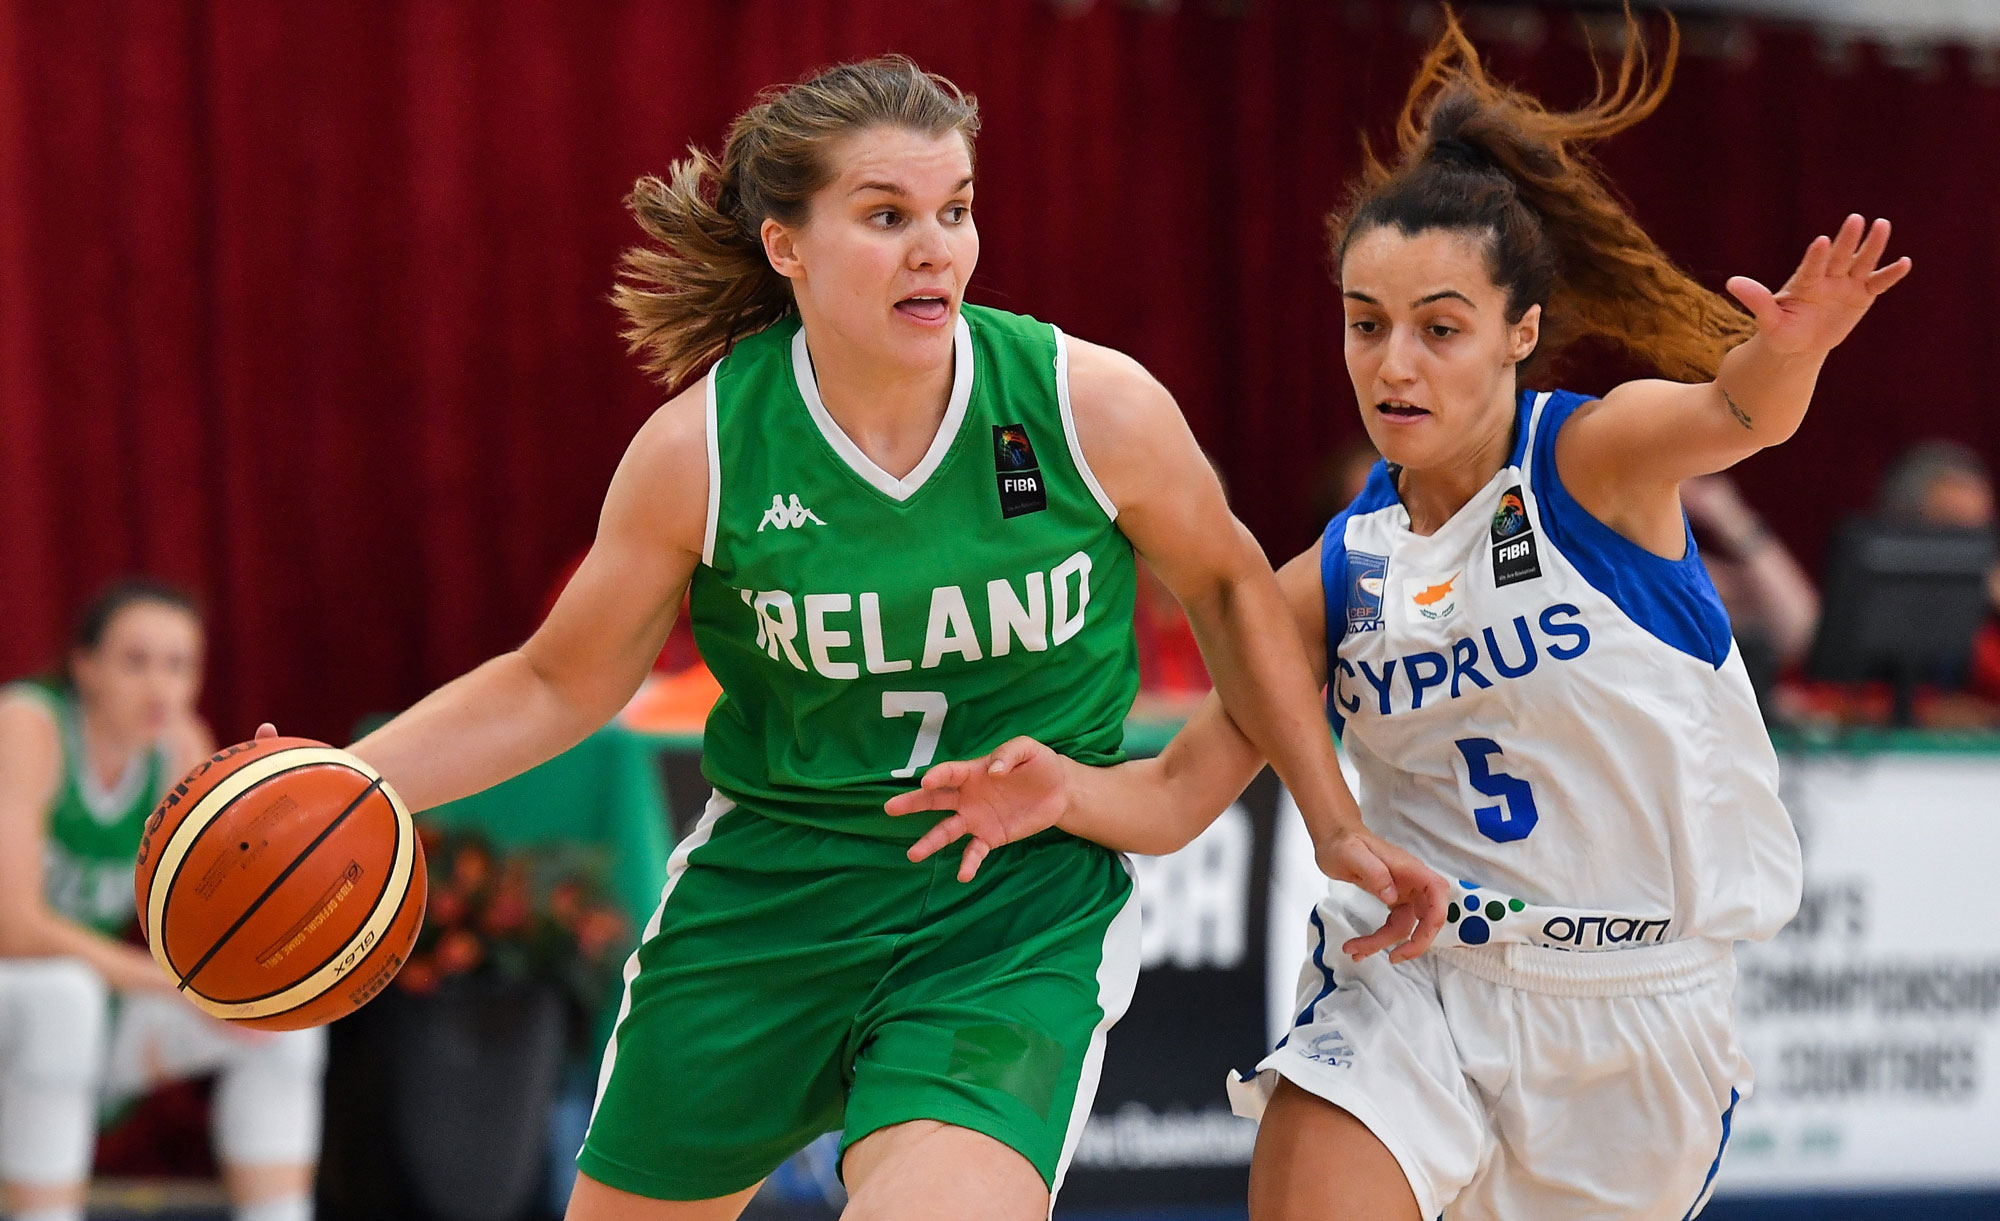 Basketball Ireland Provides Accessibility